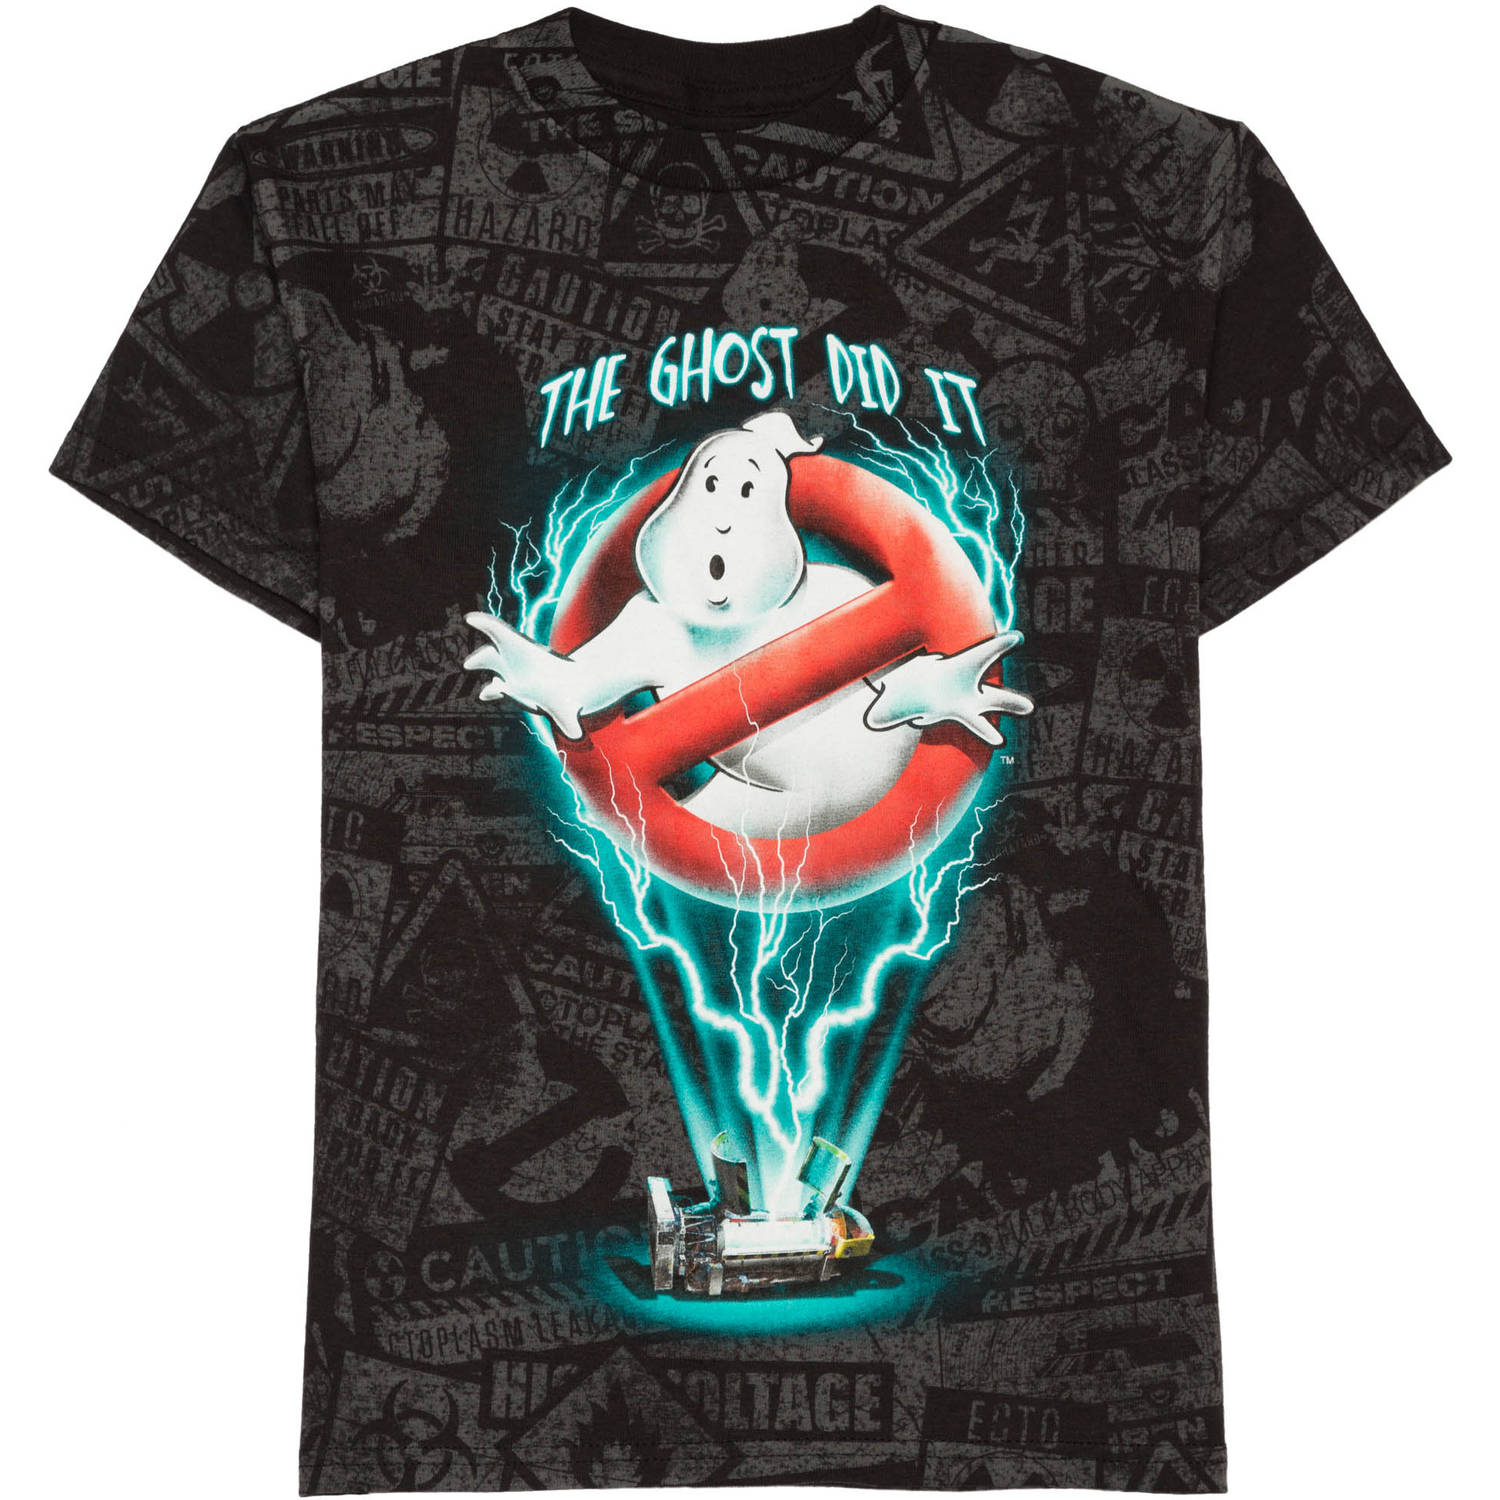 Ghostbusters Boys The Ghost Did It Graphic Tee